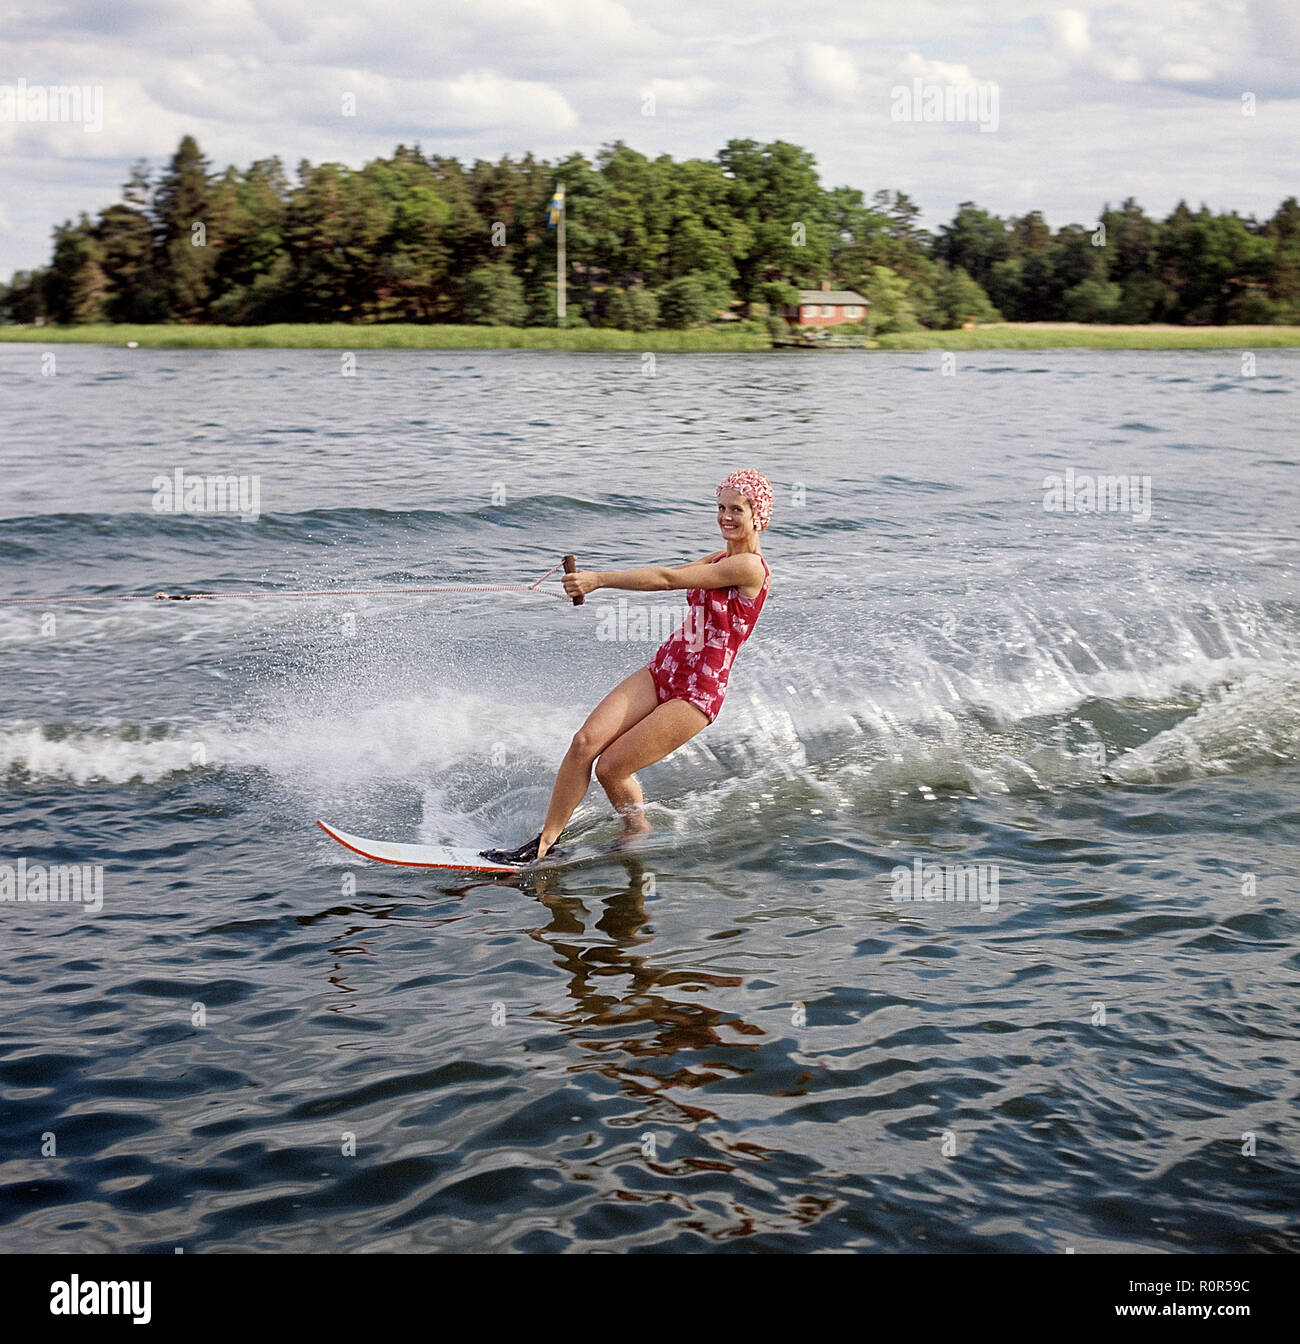 Waterskiing in the 1960s. A young woman in a patterned bathing suit passes the photographer on her waterskis. She has a typical bathing cap on. Sweden 1946 Photo Kristoffersson ref CV12-7 - Stock Image